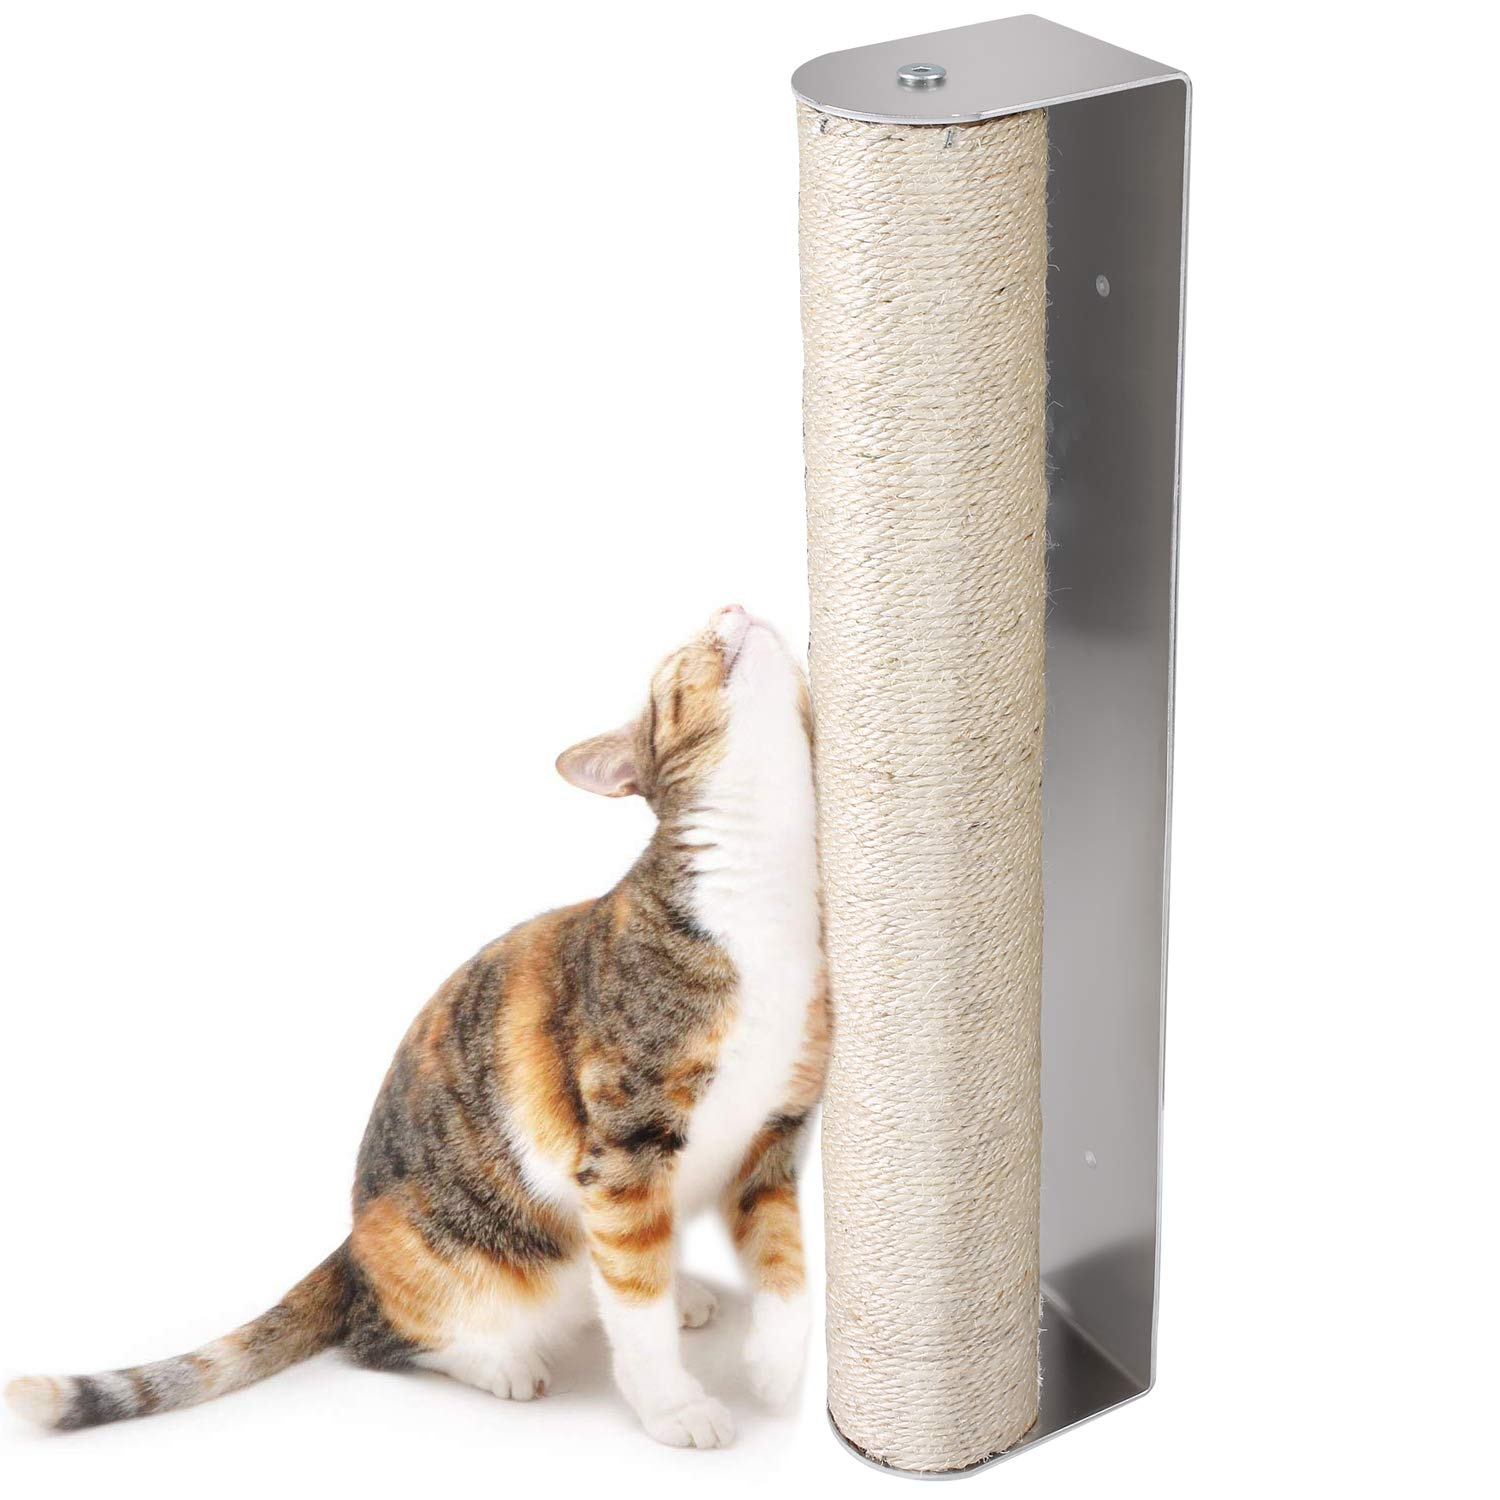 Treasborn Wall Cat Scratching Post and Cage Mounted Sisal Scratcher for Large Cats No Mess Floor Sturdy Wood Mountings Space-Saving Scratch Post Furniture Natural Vertical